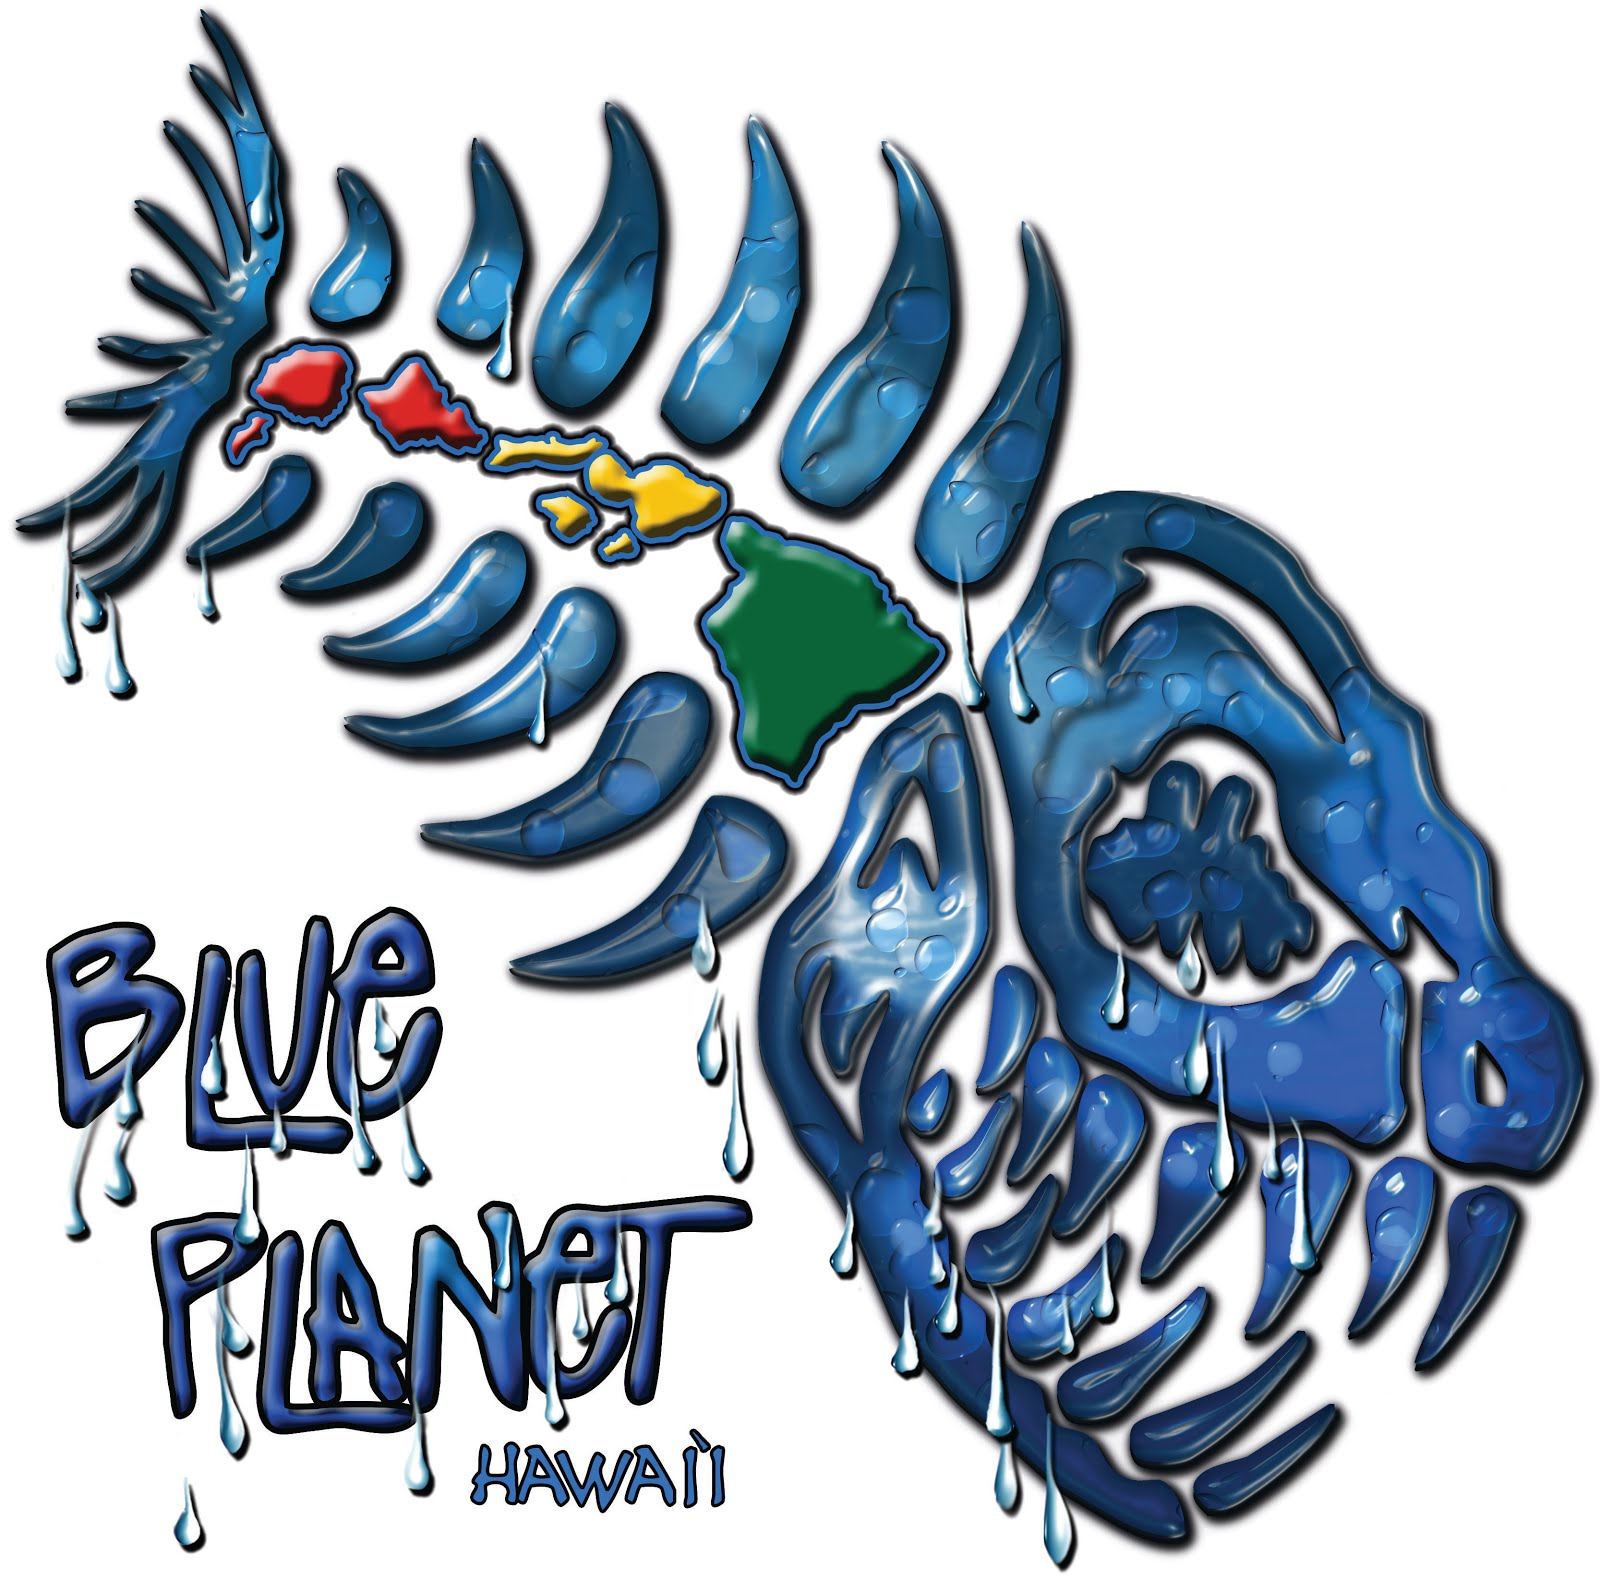 This Blog is brought to you by Blue Planet Surf